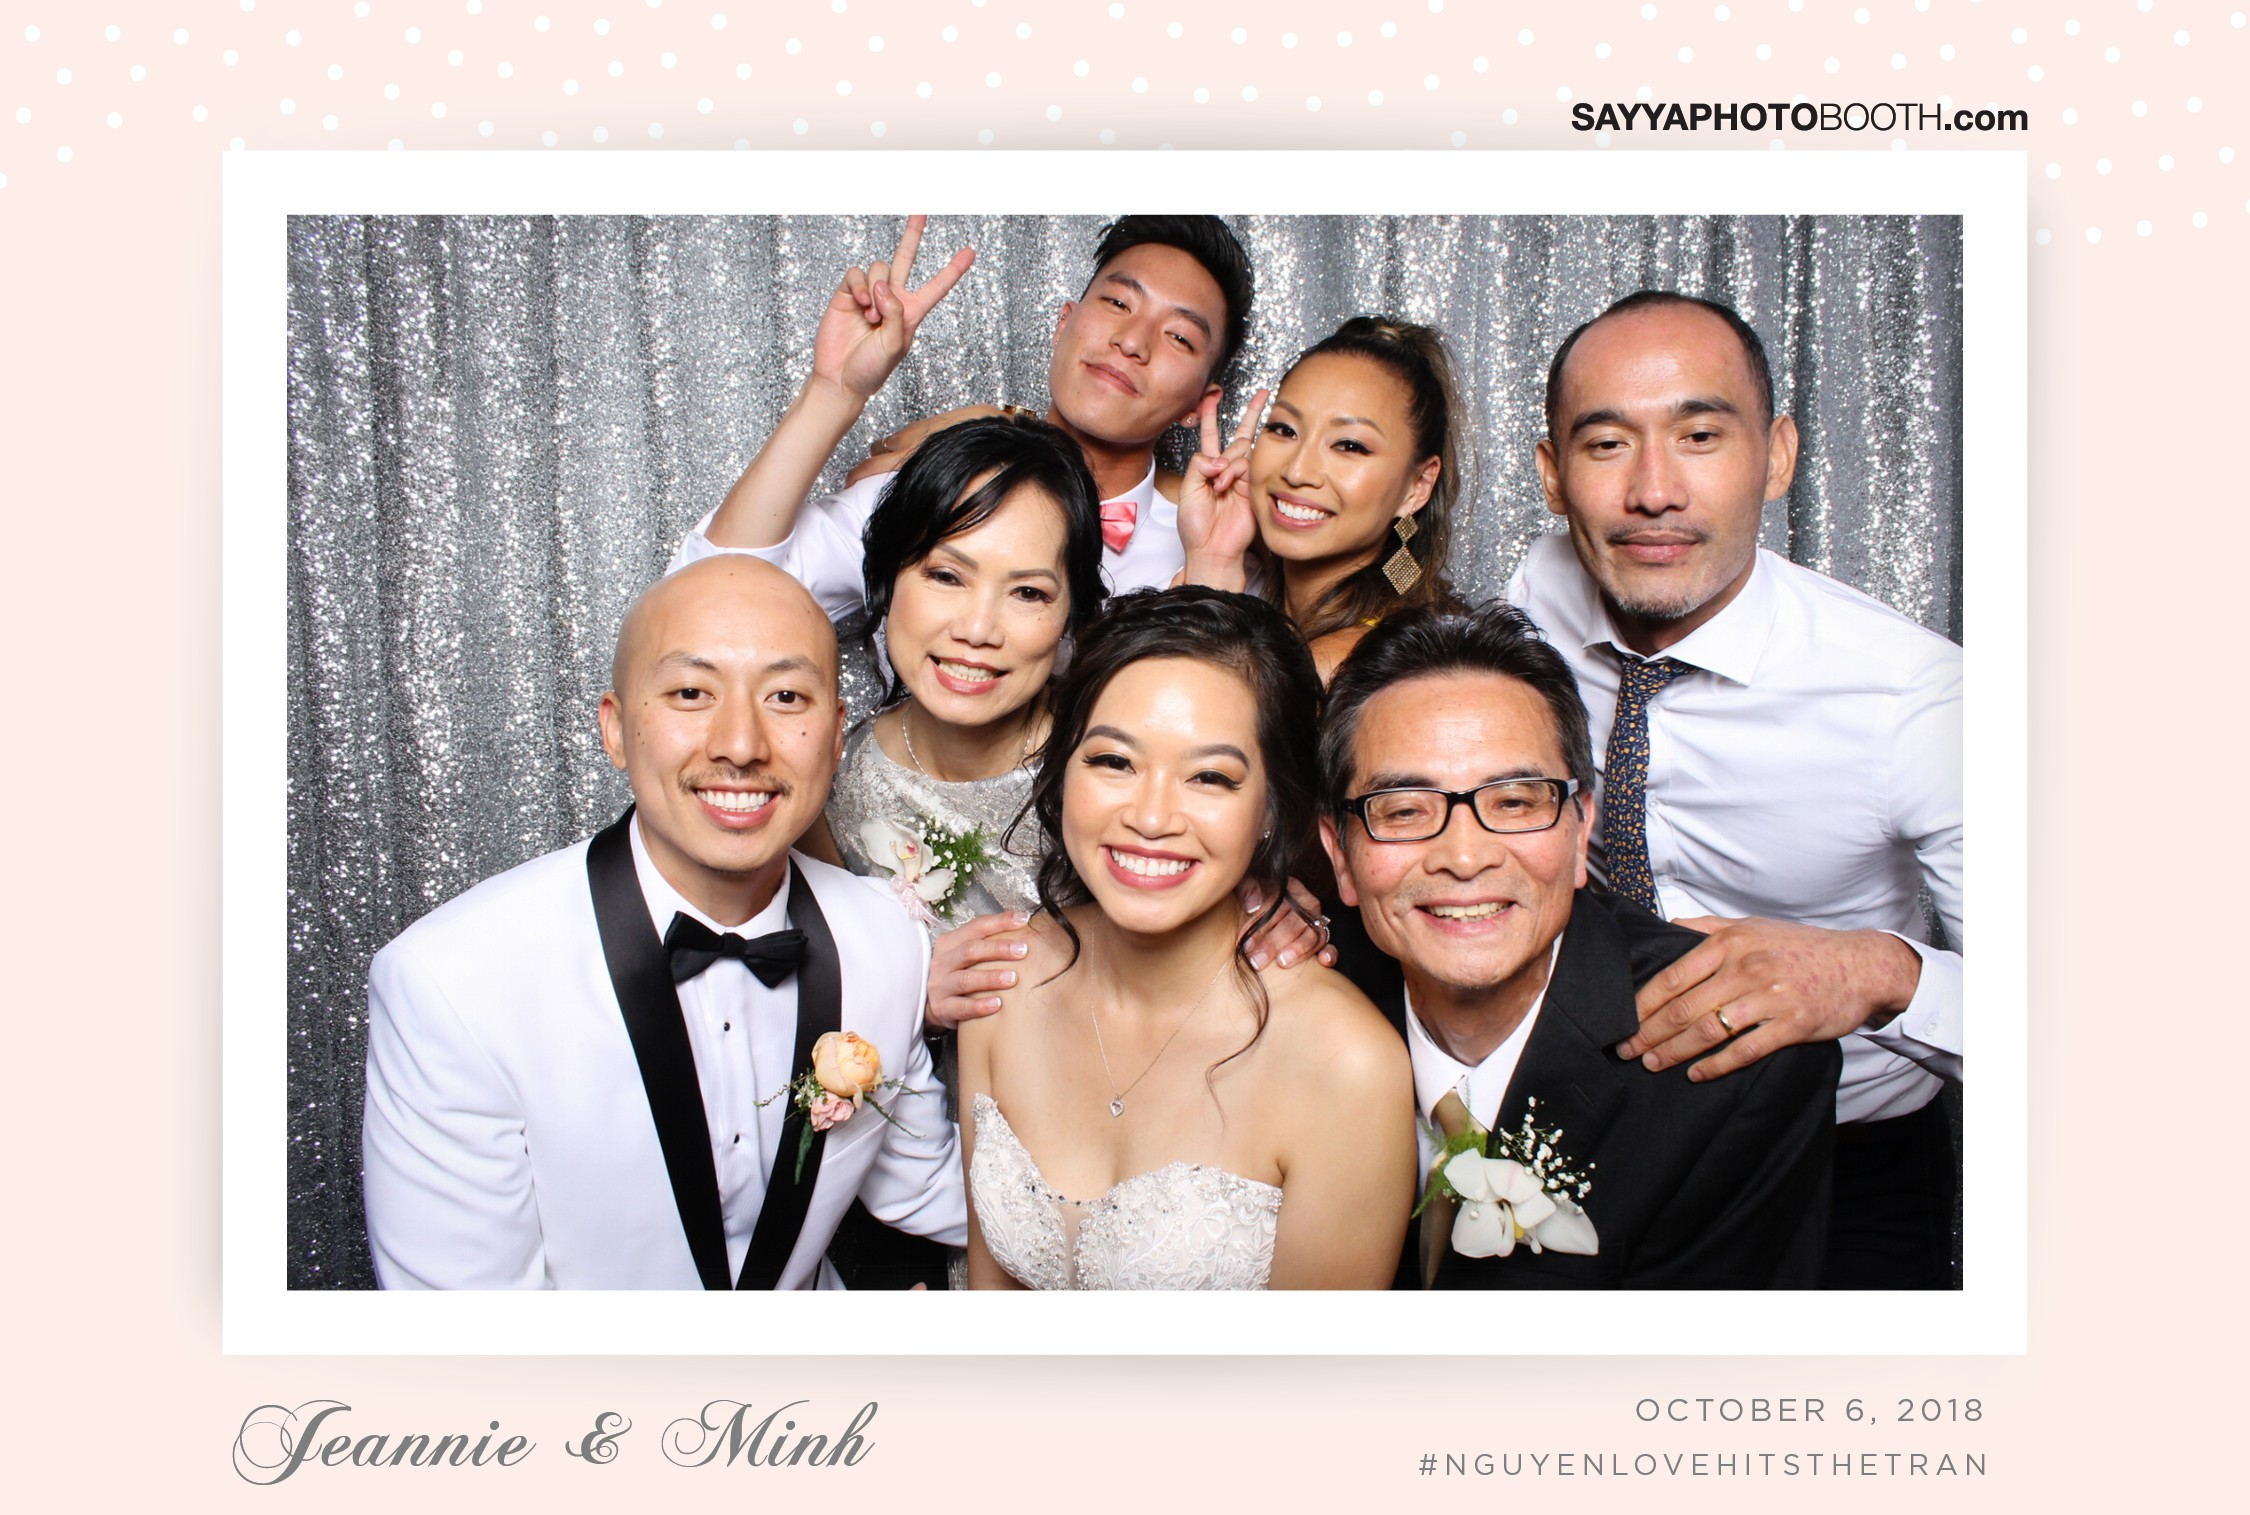 Jeannie and Minh's Wedding